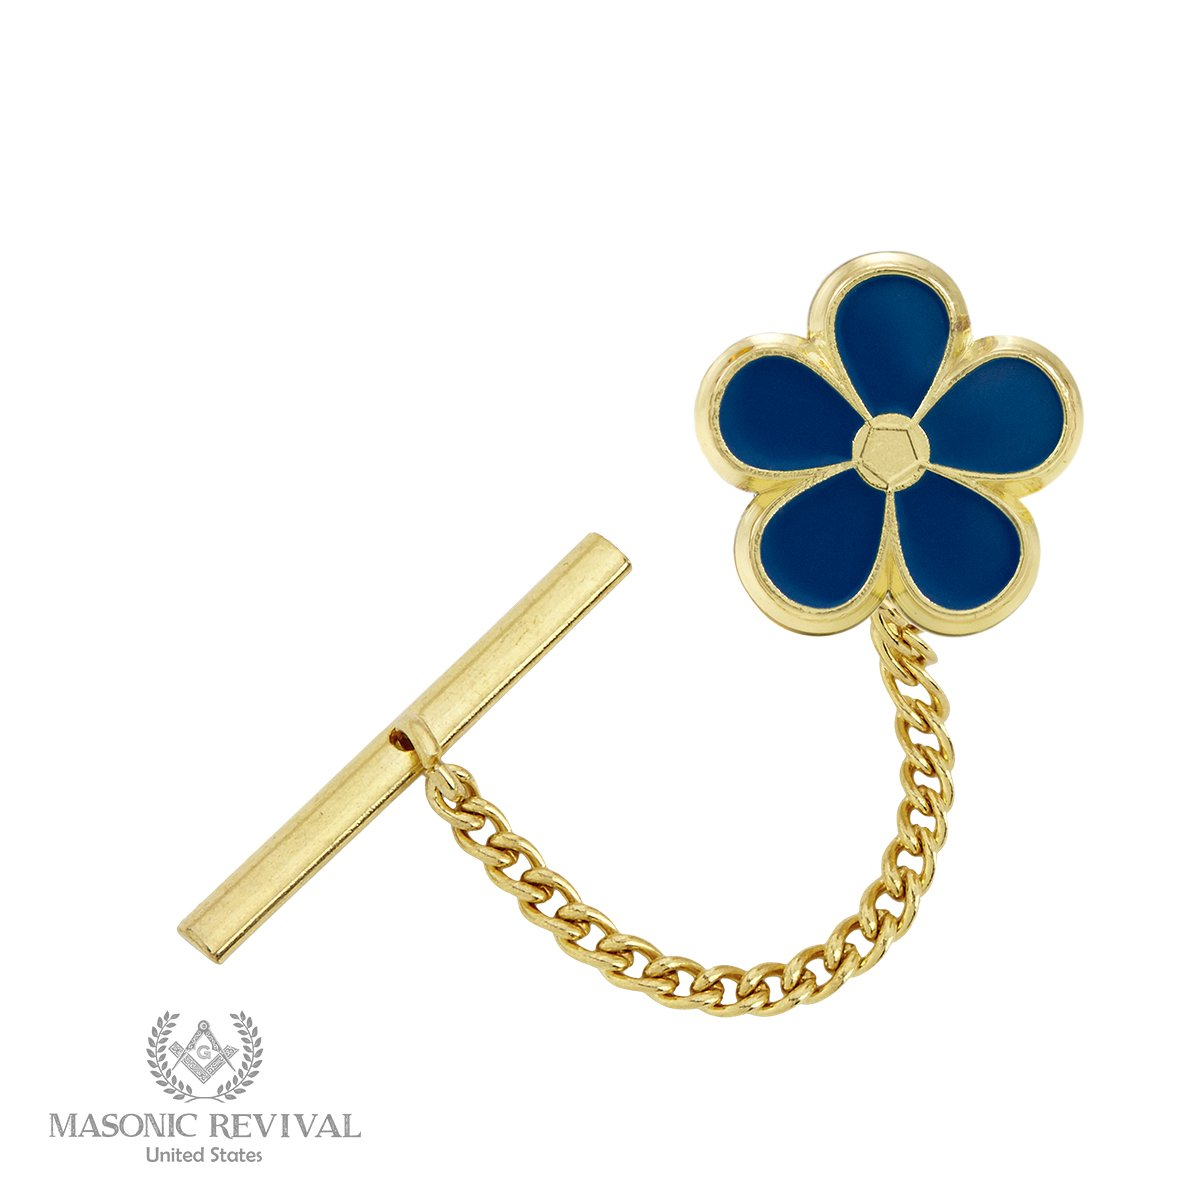 Forget Met Not Tie Pin Tack by Masonic Revival (Golden)